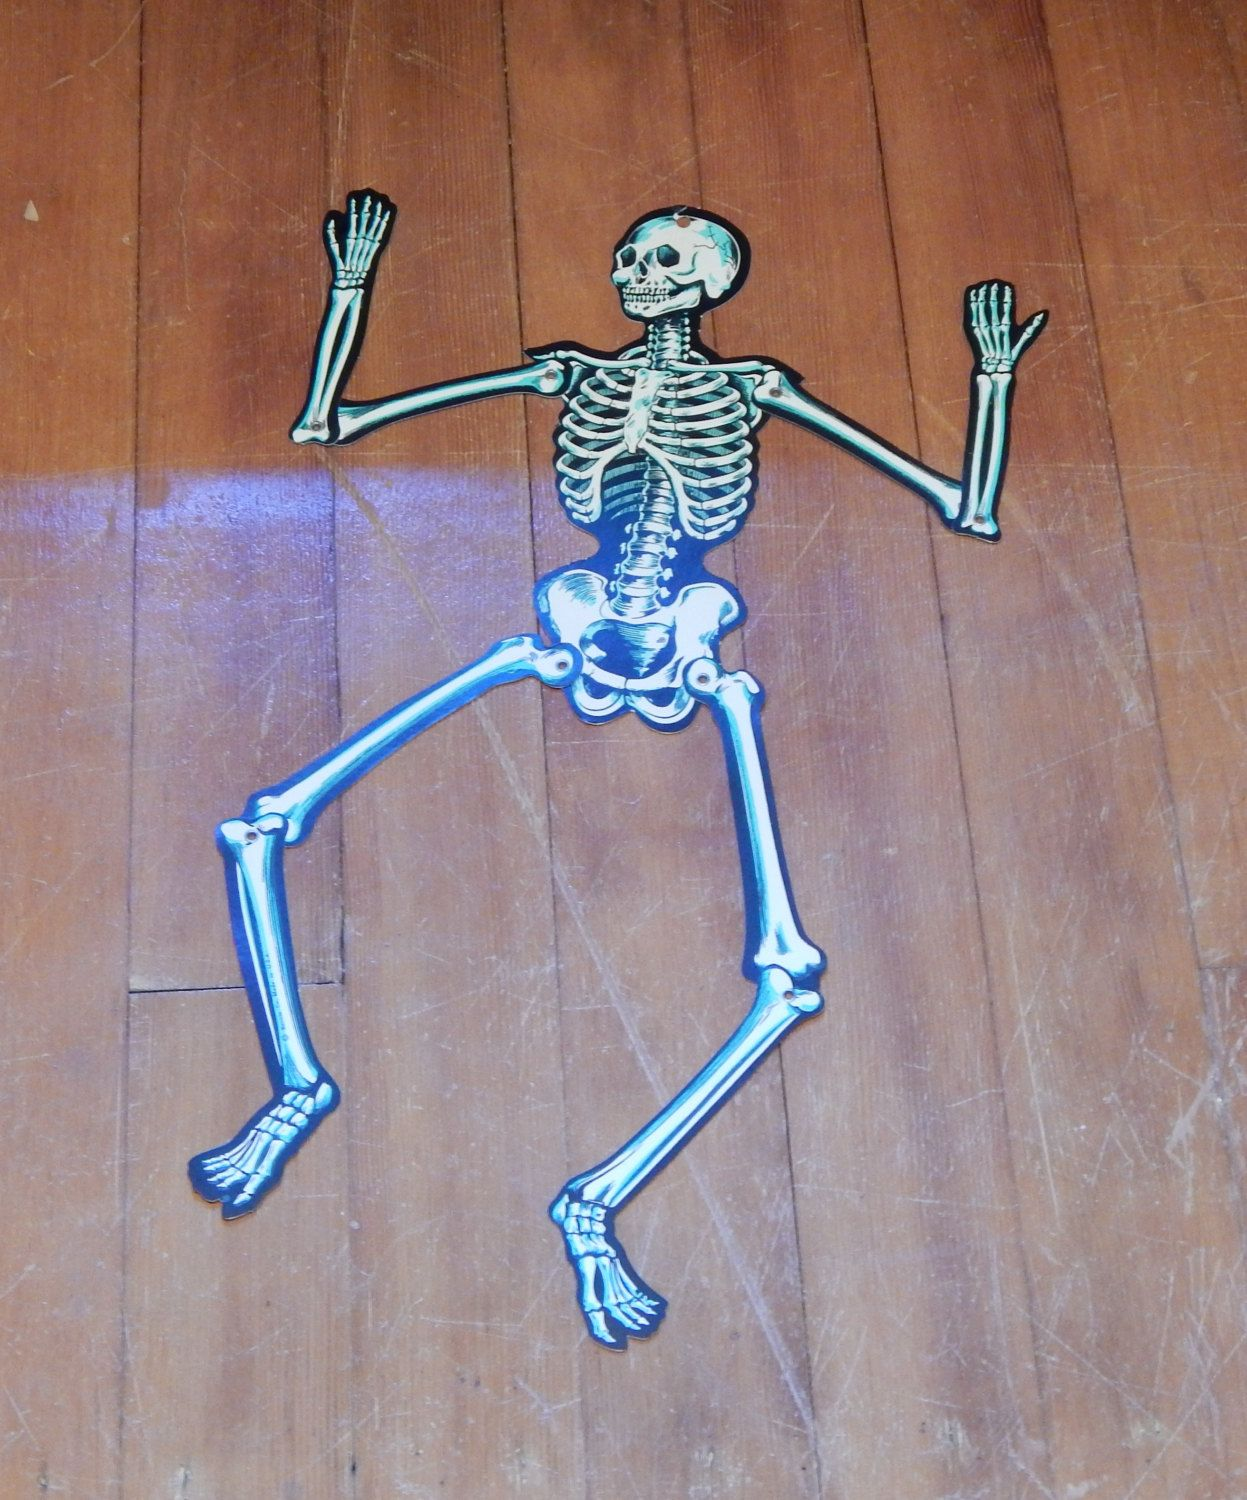 Vintage Halloween Skeleton Beistle Made In USA Spooky Jointed Decoration 50s 60s Paper Ephemera Party Decor